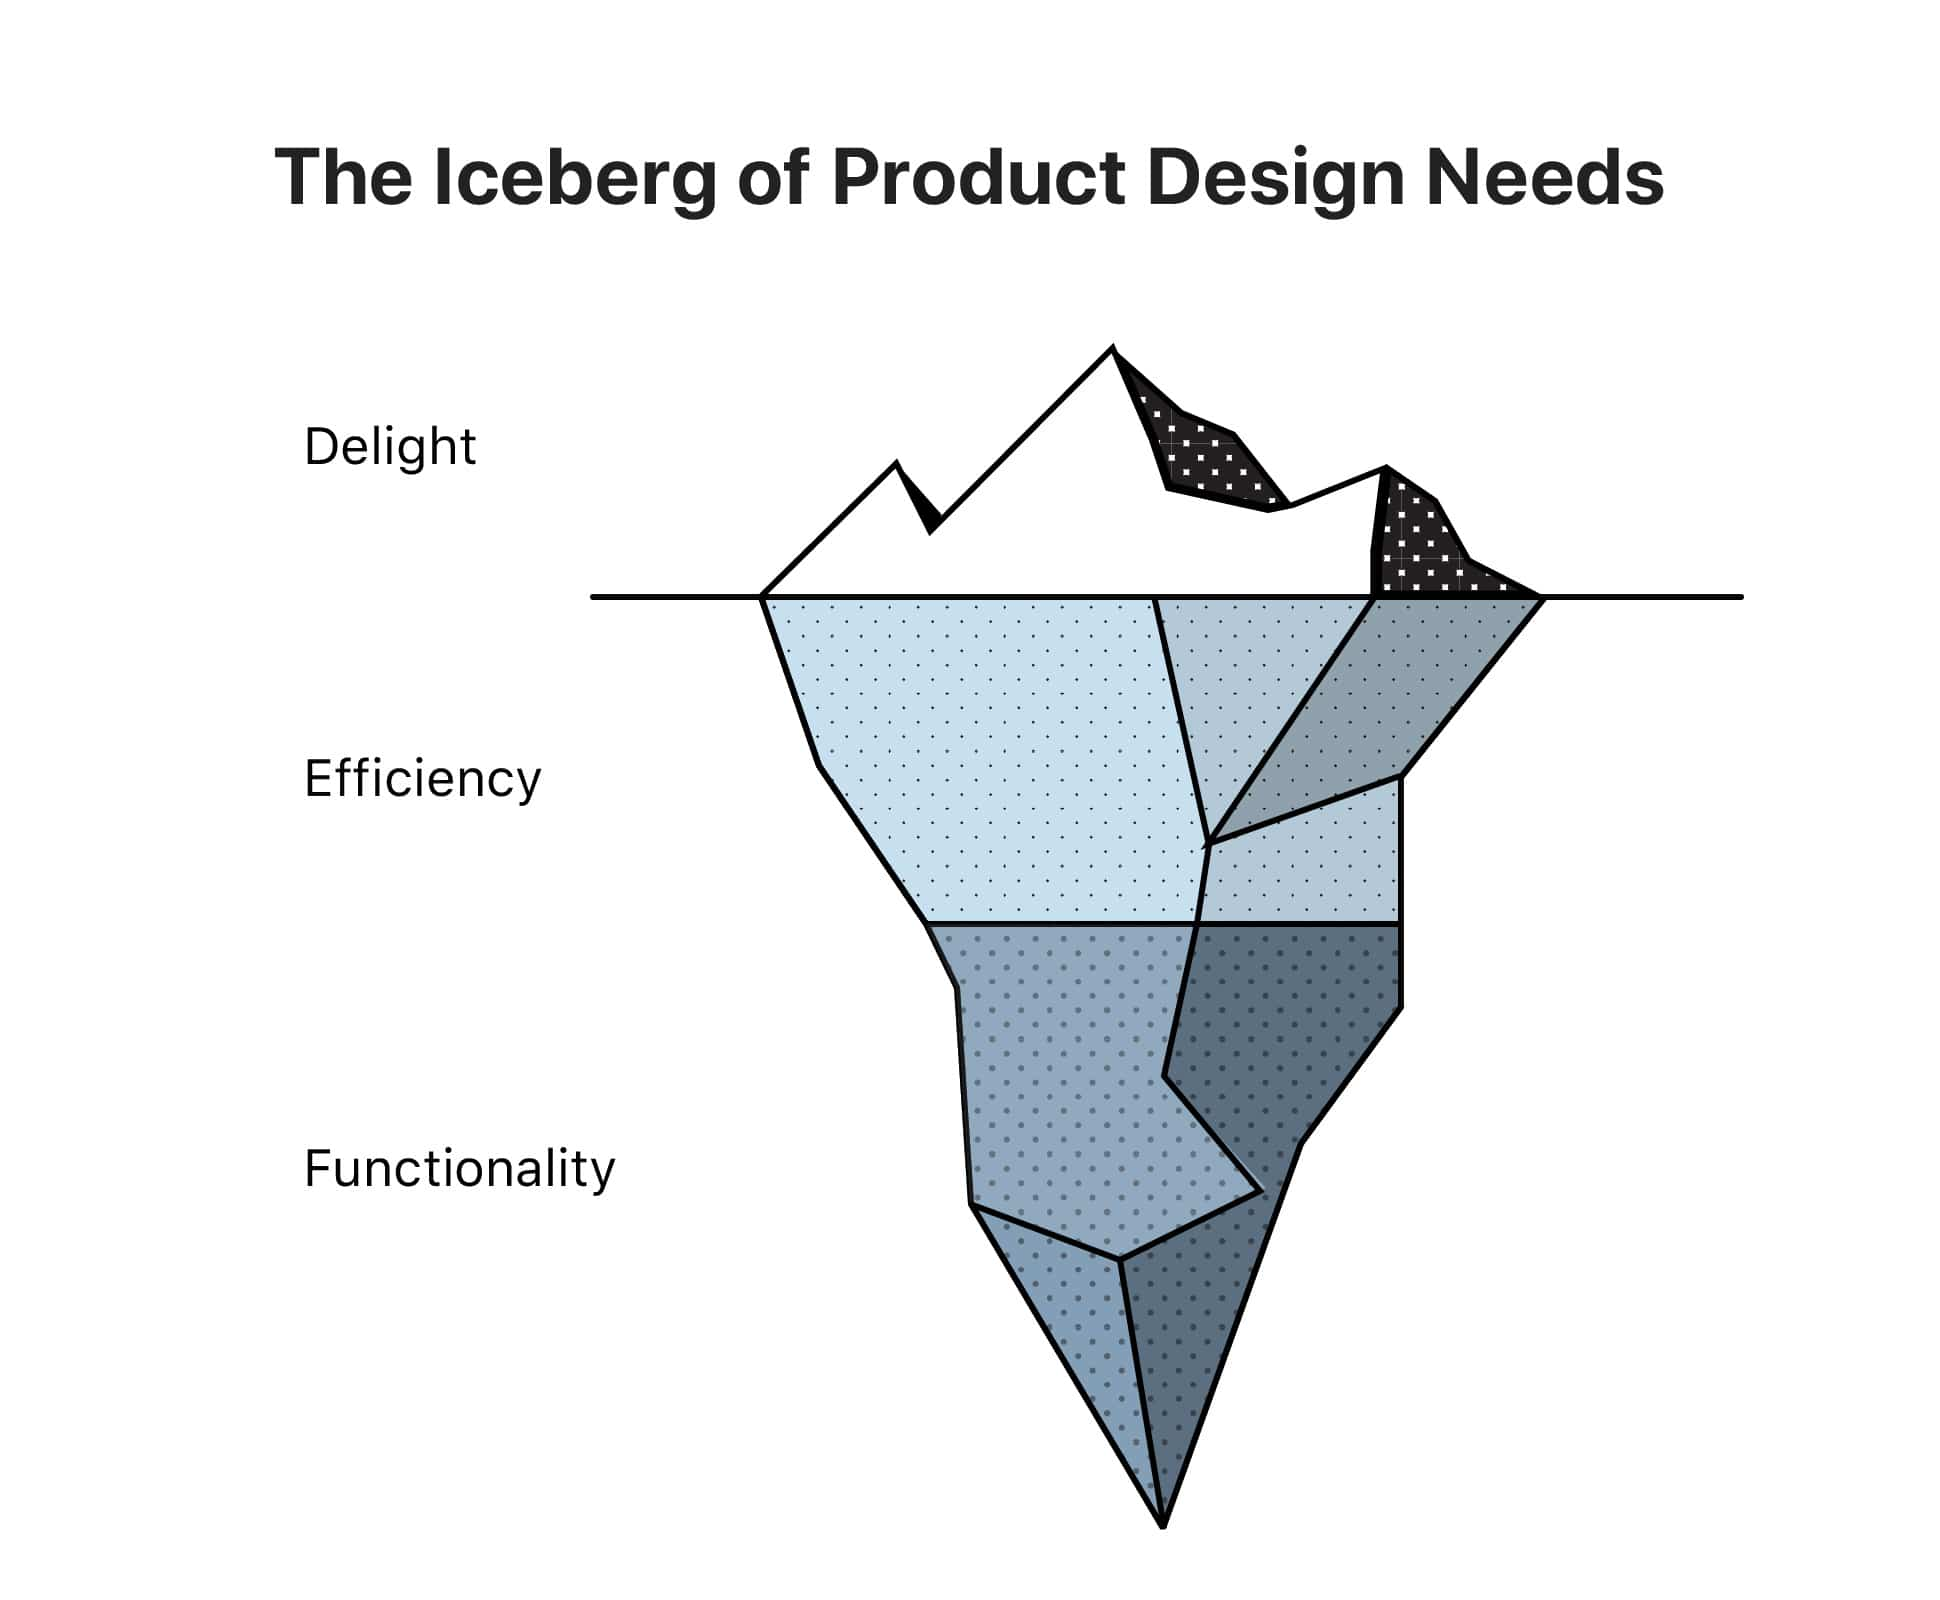 The Iceberg of Product Design Needs